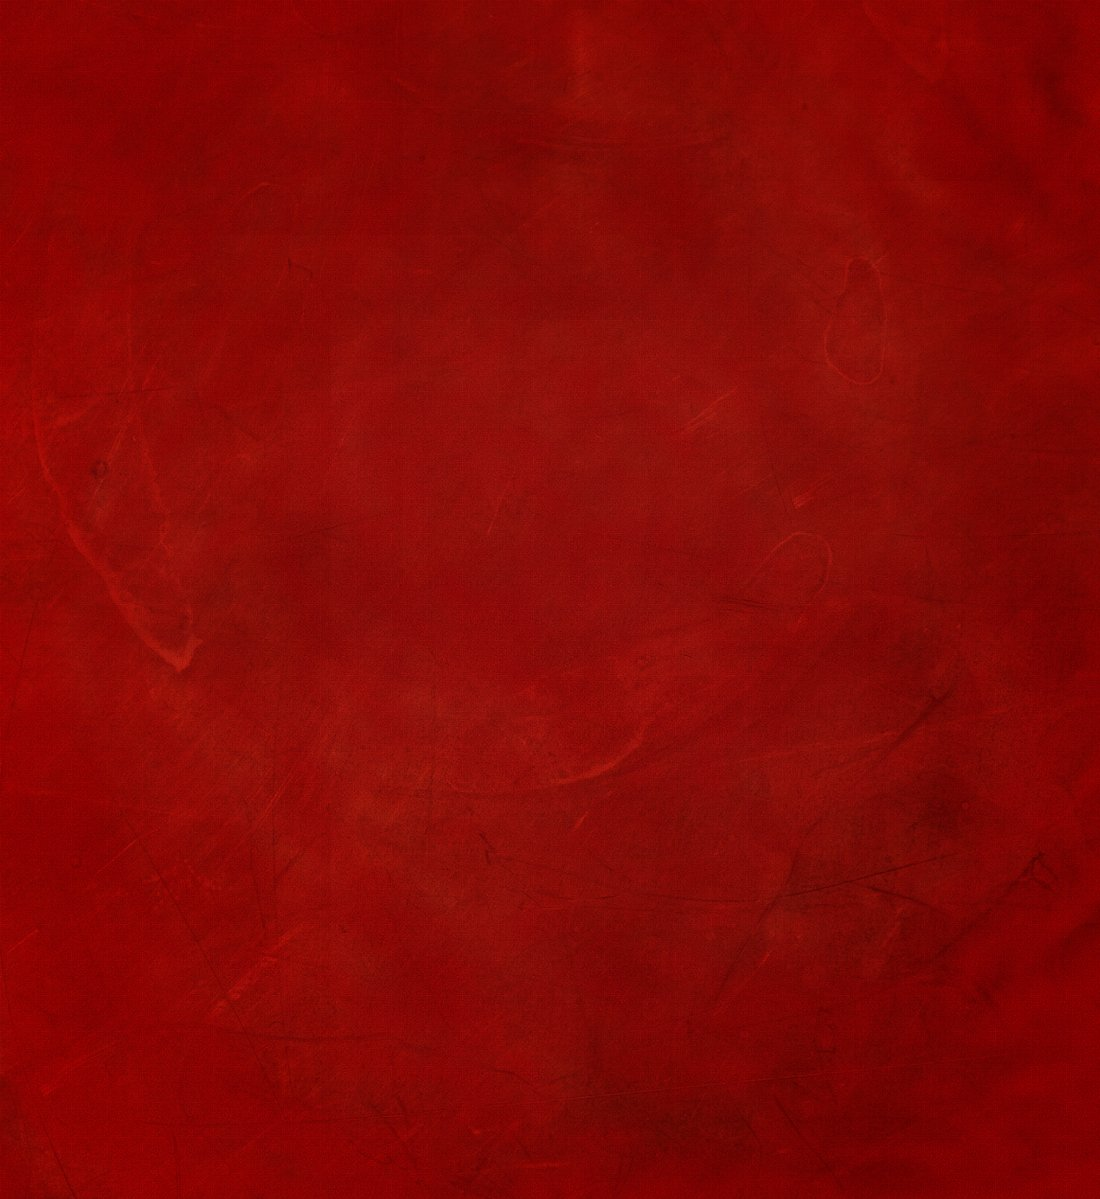 Christmas Texture.Free Red Christmas Texture 1 Stock Photo Freeimages Com